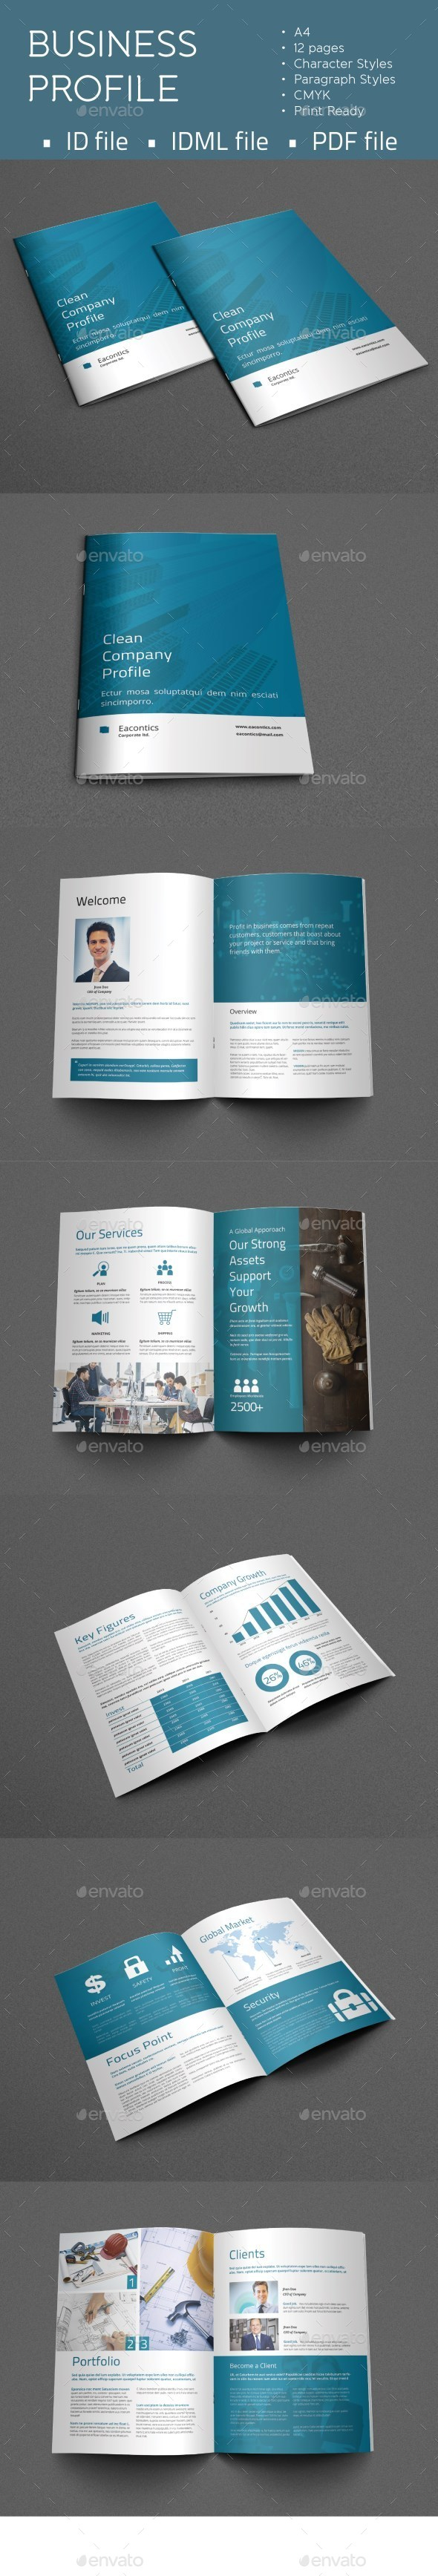 GraphicRiver Business Profile 11010269